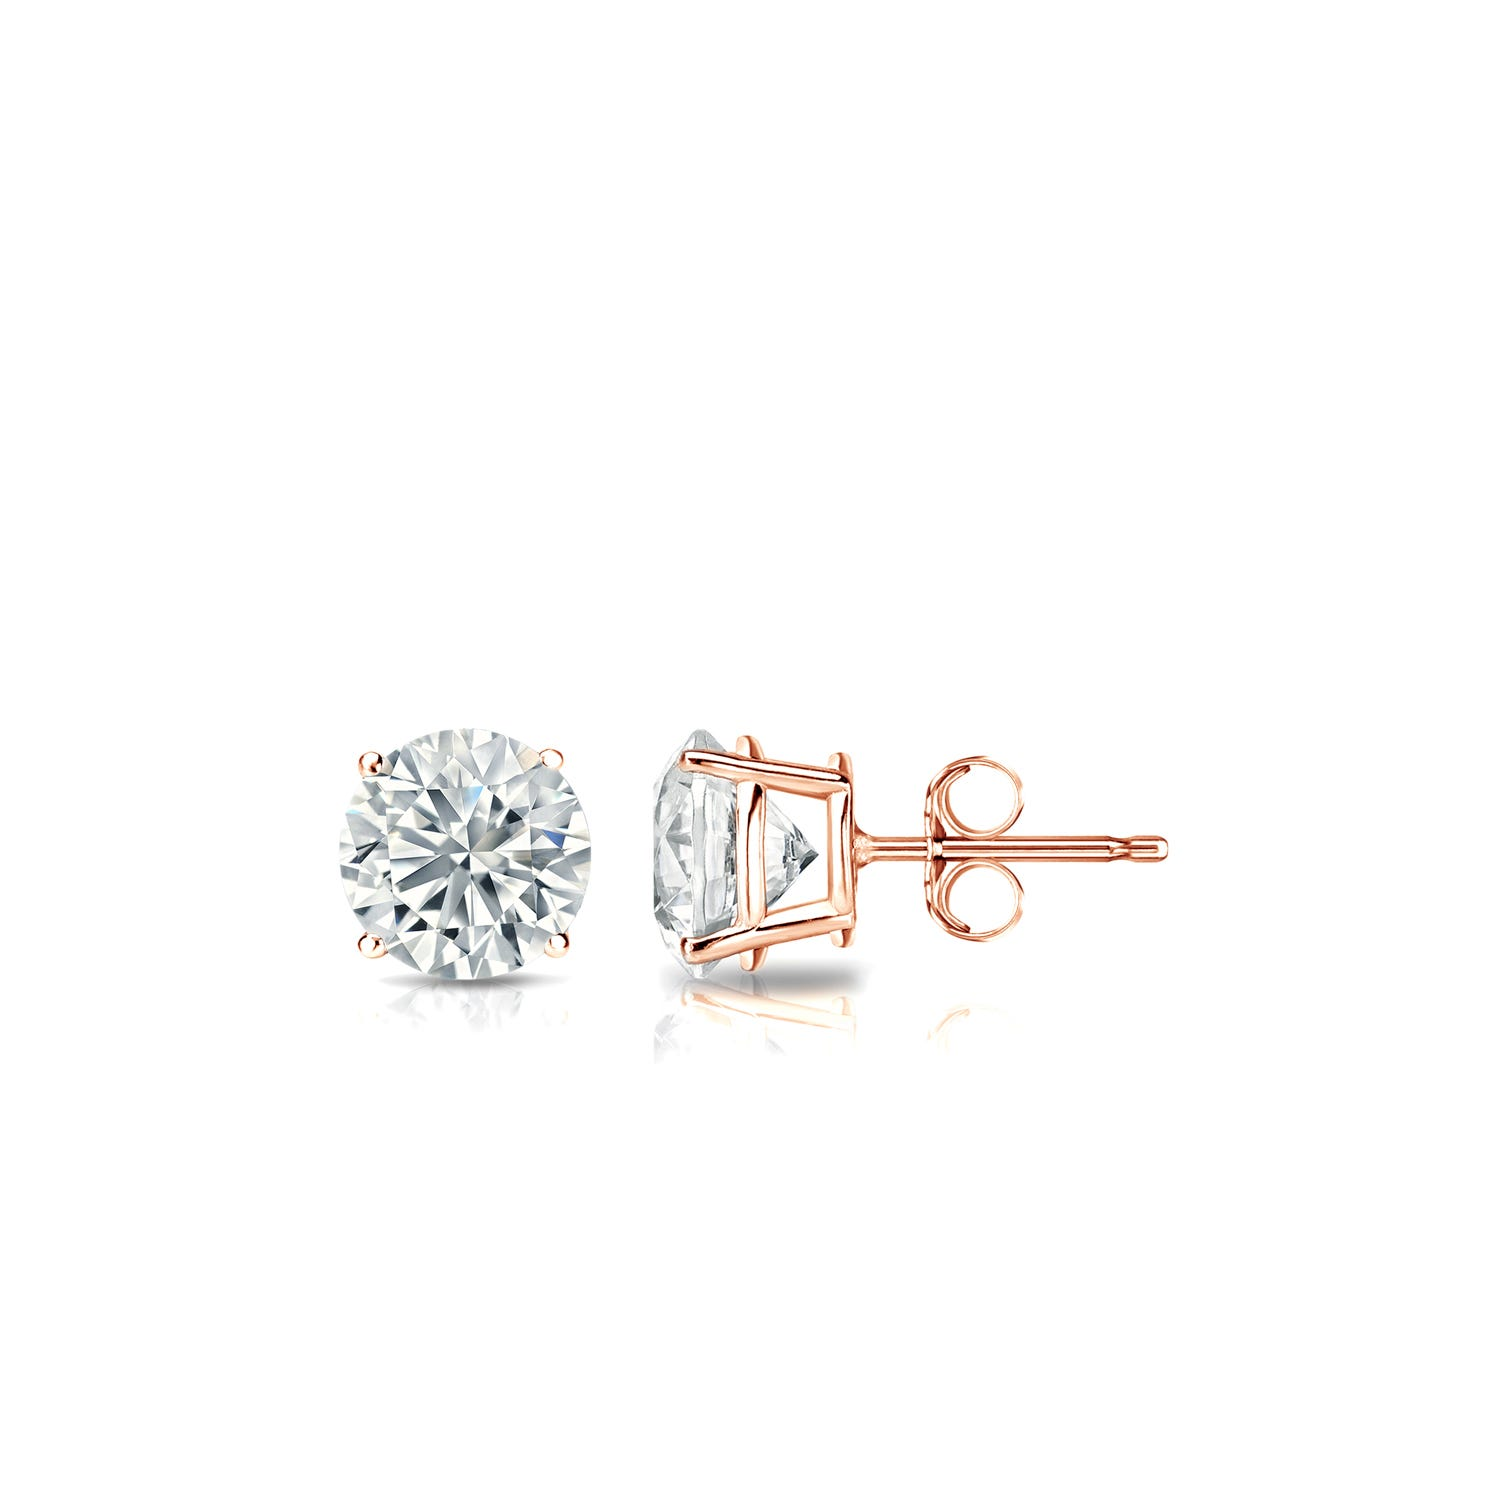 Diamond 3/8ctw. Round Solitaire Stud Earrings (I-J, VS2) 14k Rose Gold